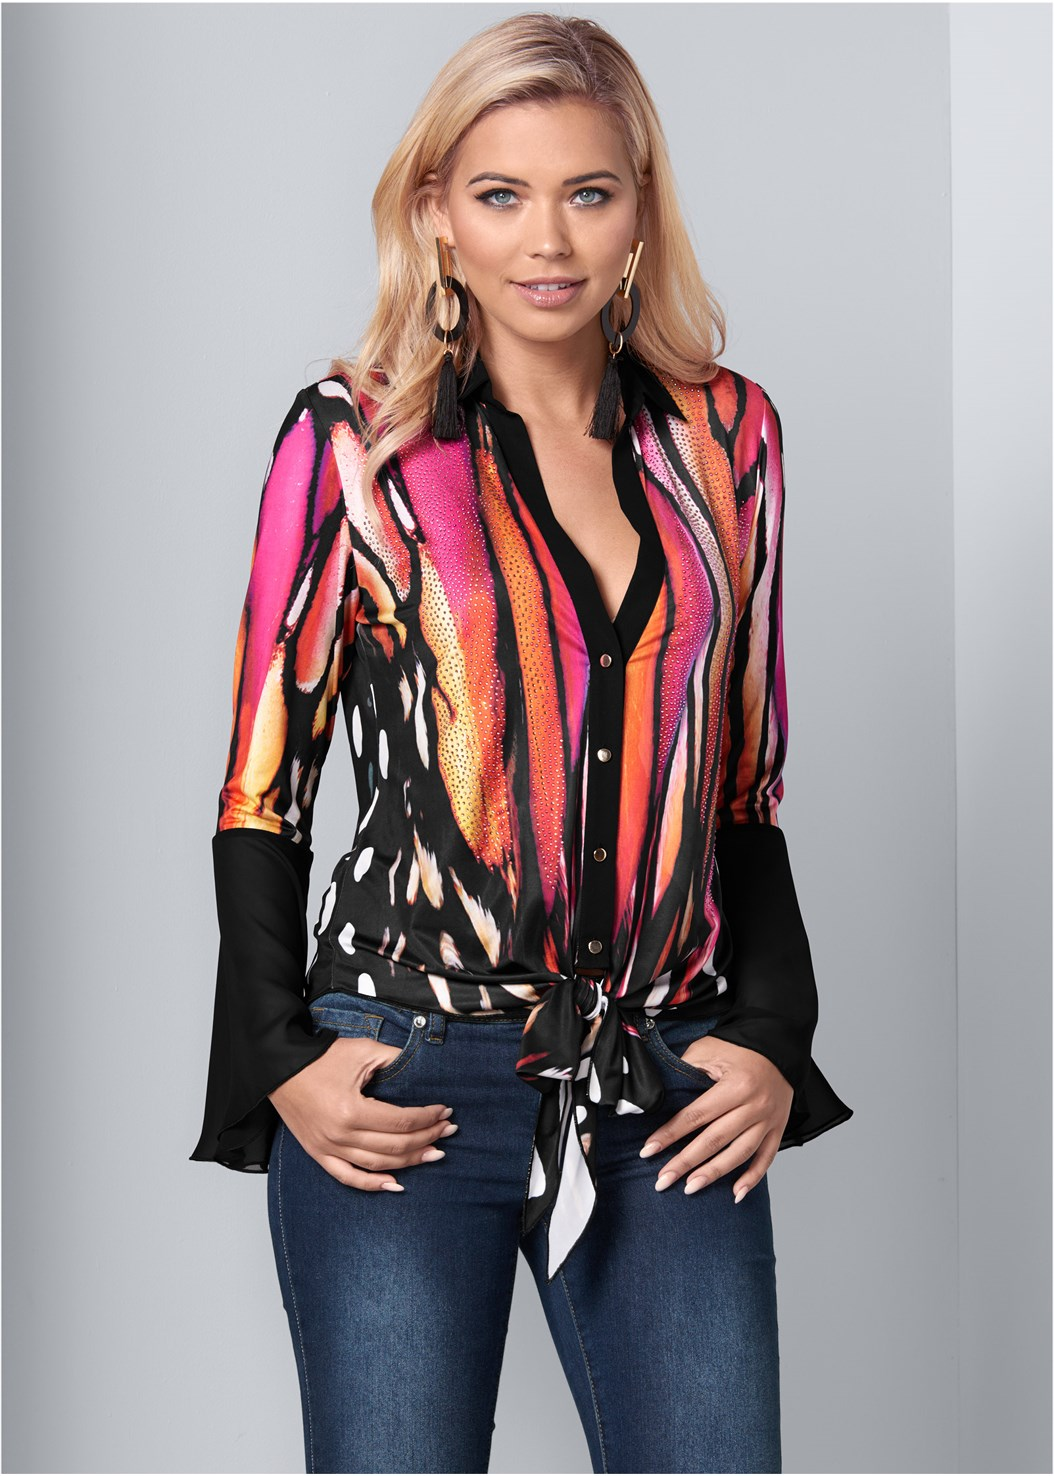 Embellished Tie Front Print Top,Mid Rise Color Skinny Jeans,Stud Detail Crossbody